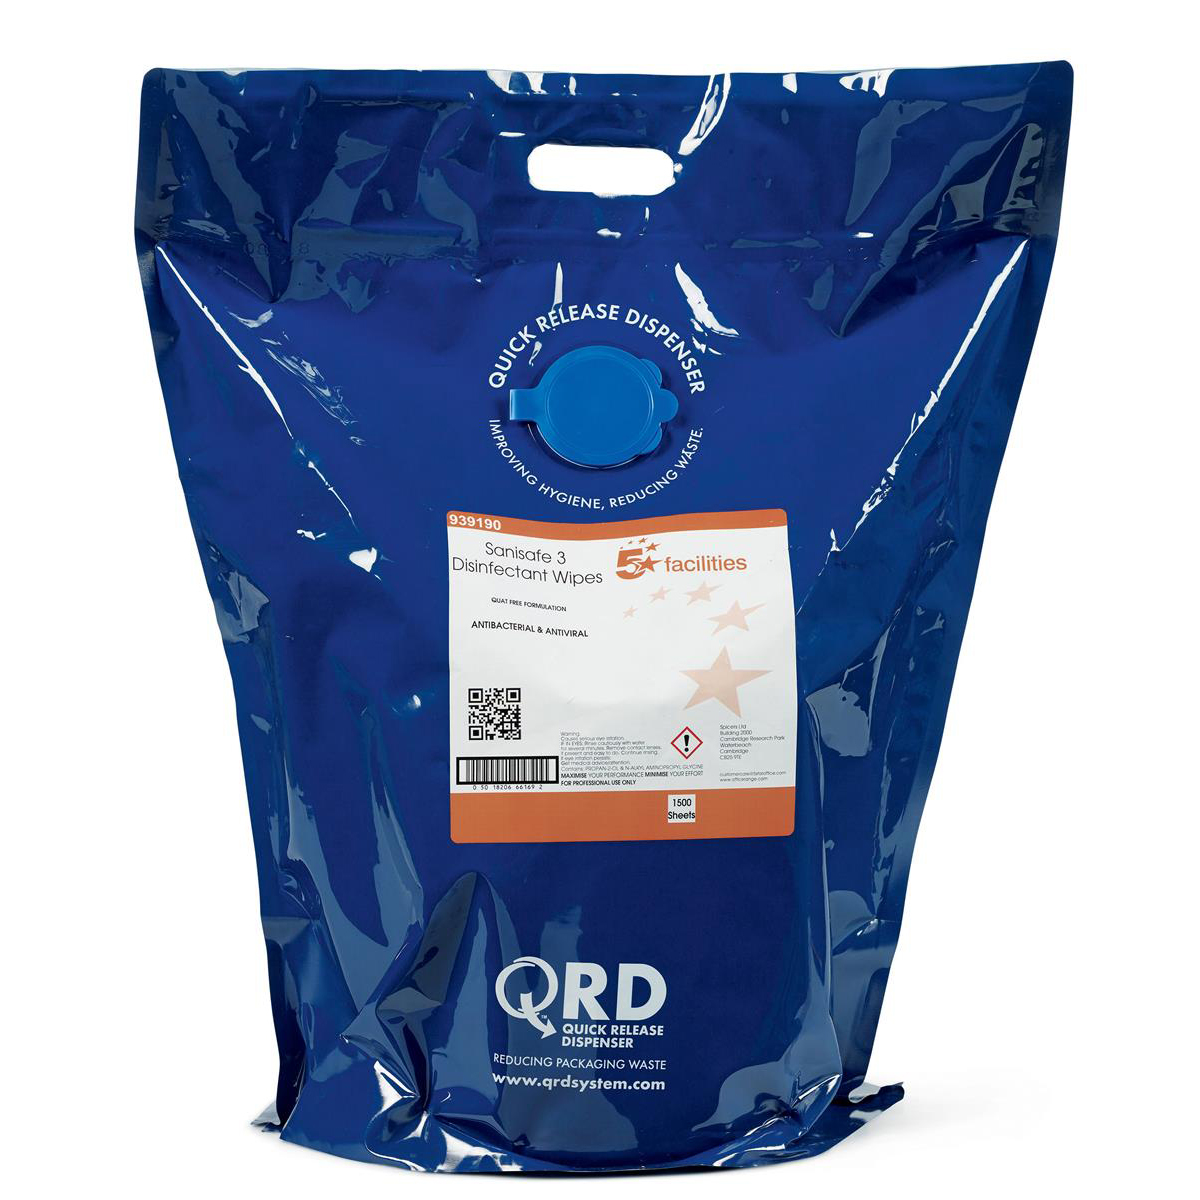 Cleaning Chemicals 5 Star Facilities Disinfectant Wipes Anti-bacterial PHMB-free BPR Low-residue 190x200mm 1500 Wipes